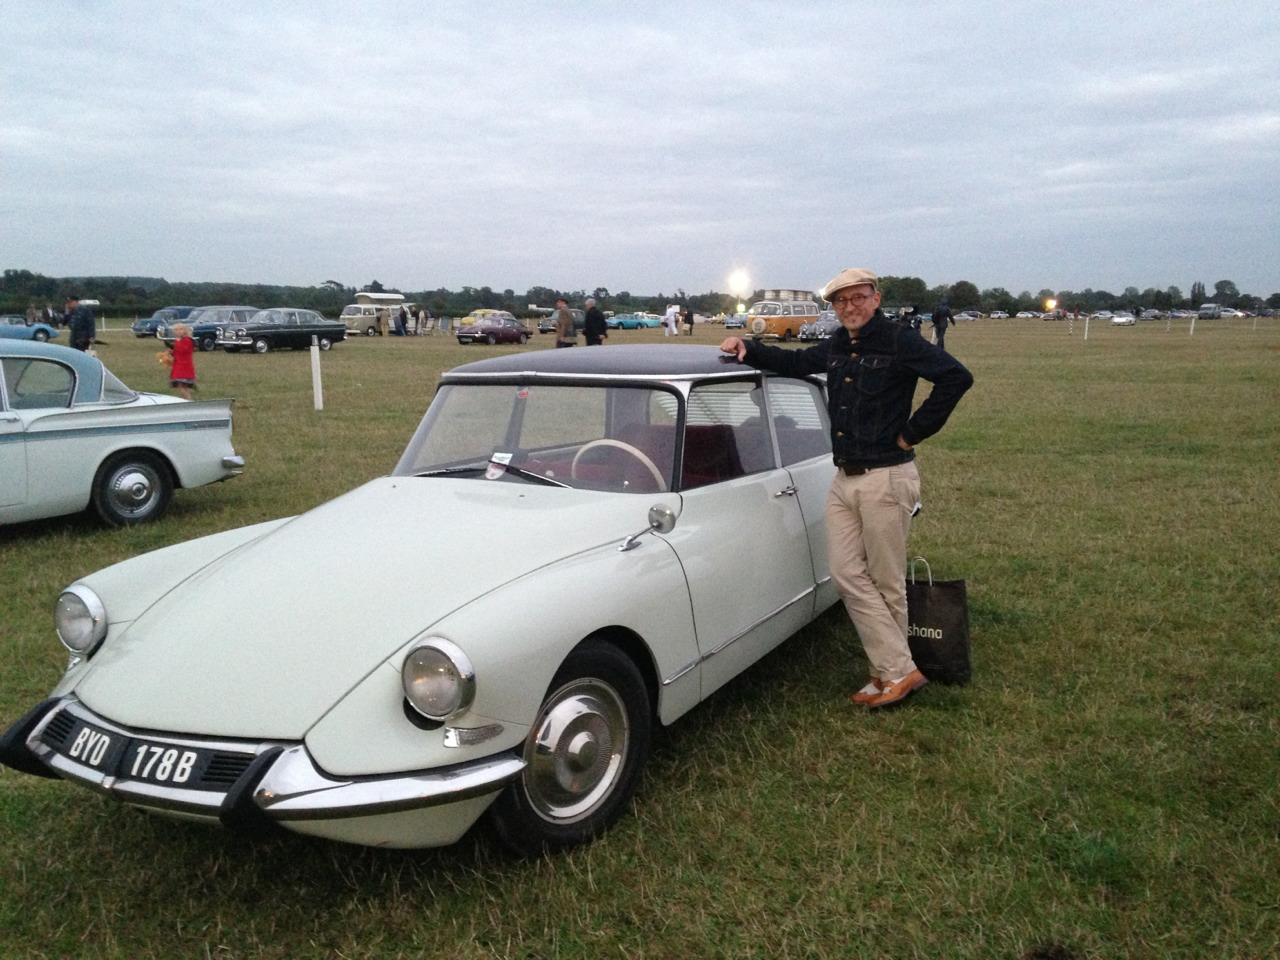 Chiropractorfin leaning on his fantasy car at Goodwood Revival